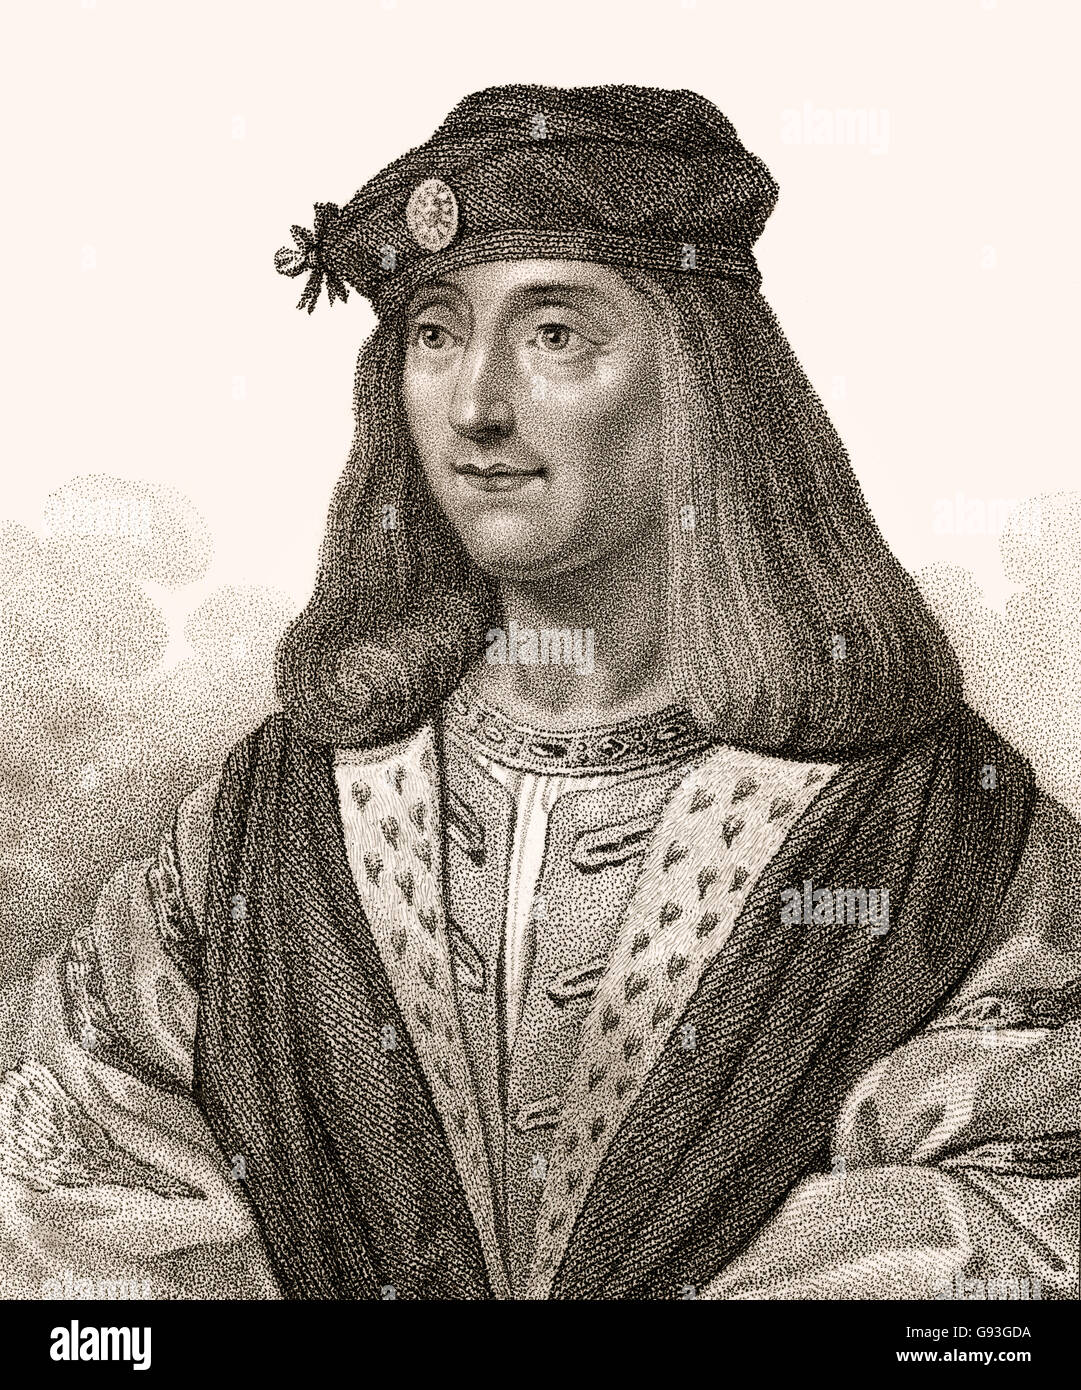 James IV, 1473-1513, King of Scots - Stock Image